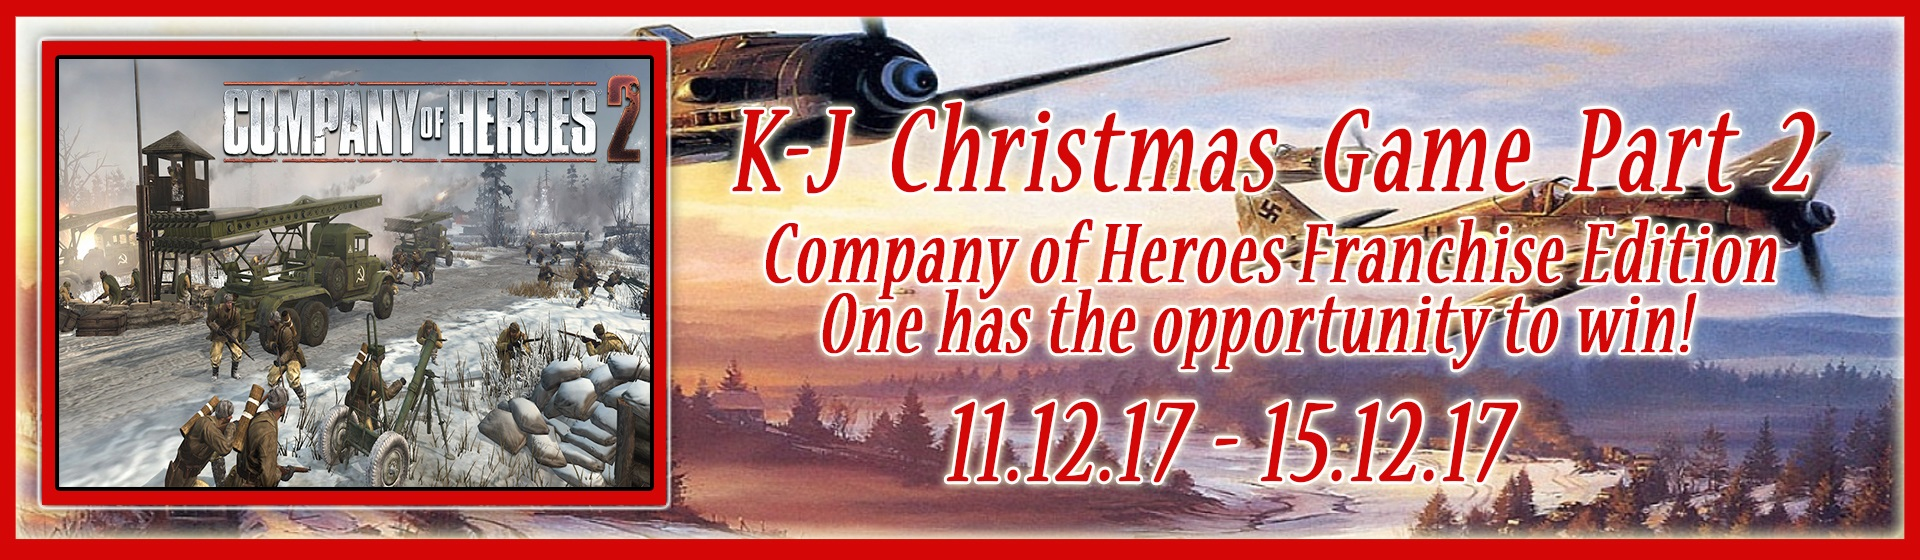 CC K J 17 Part 02 - Company of Heroes 2 Windows game